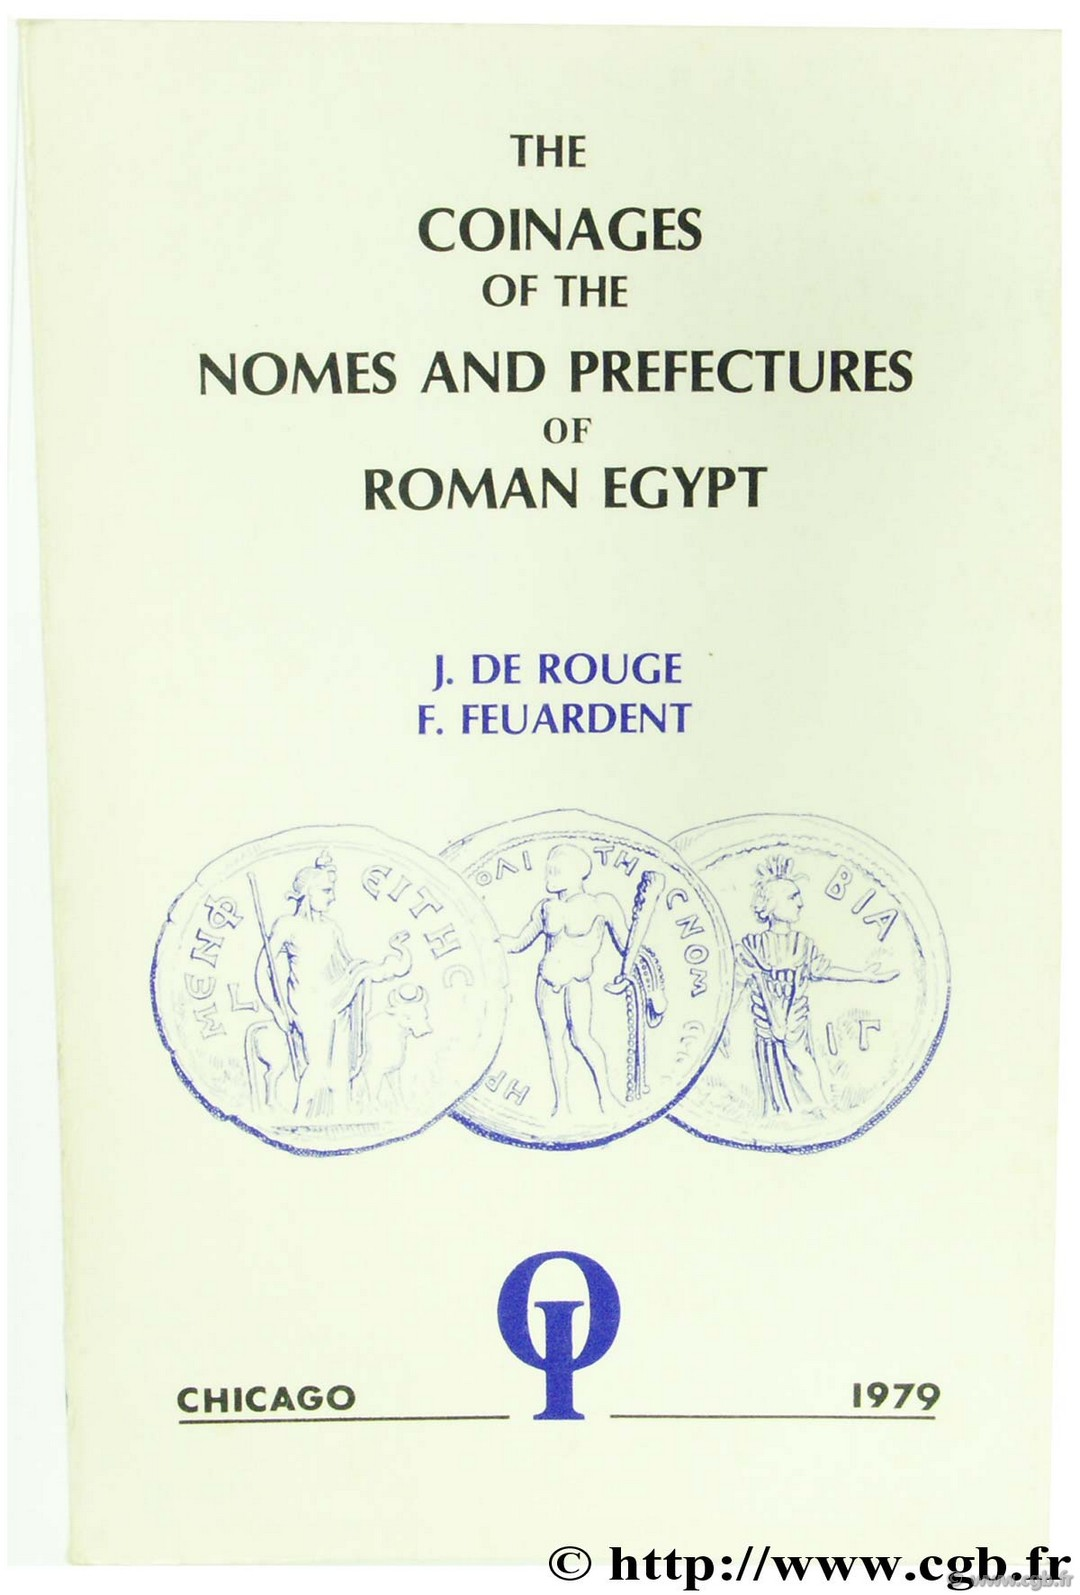 The Coinage of the Nomes and Prefectures of Roman Egypt DE ROUGE J., FEUARDENT F.